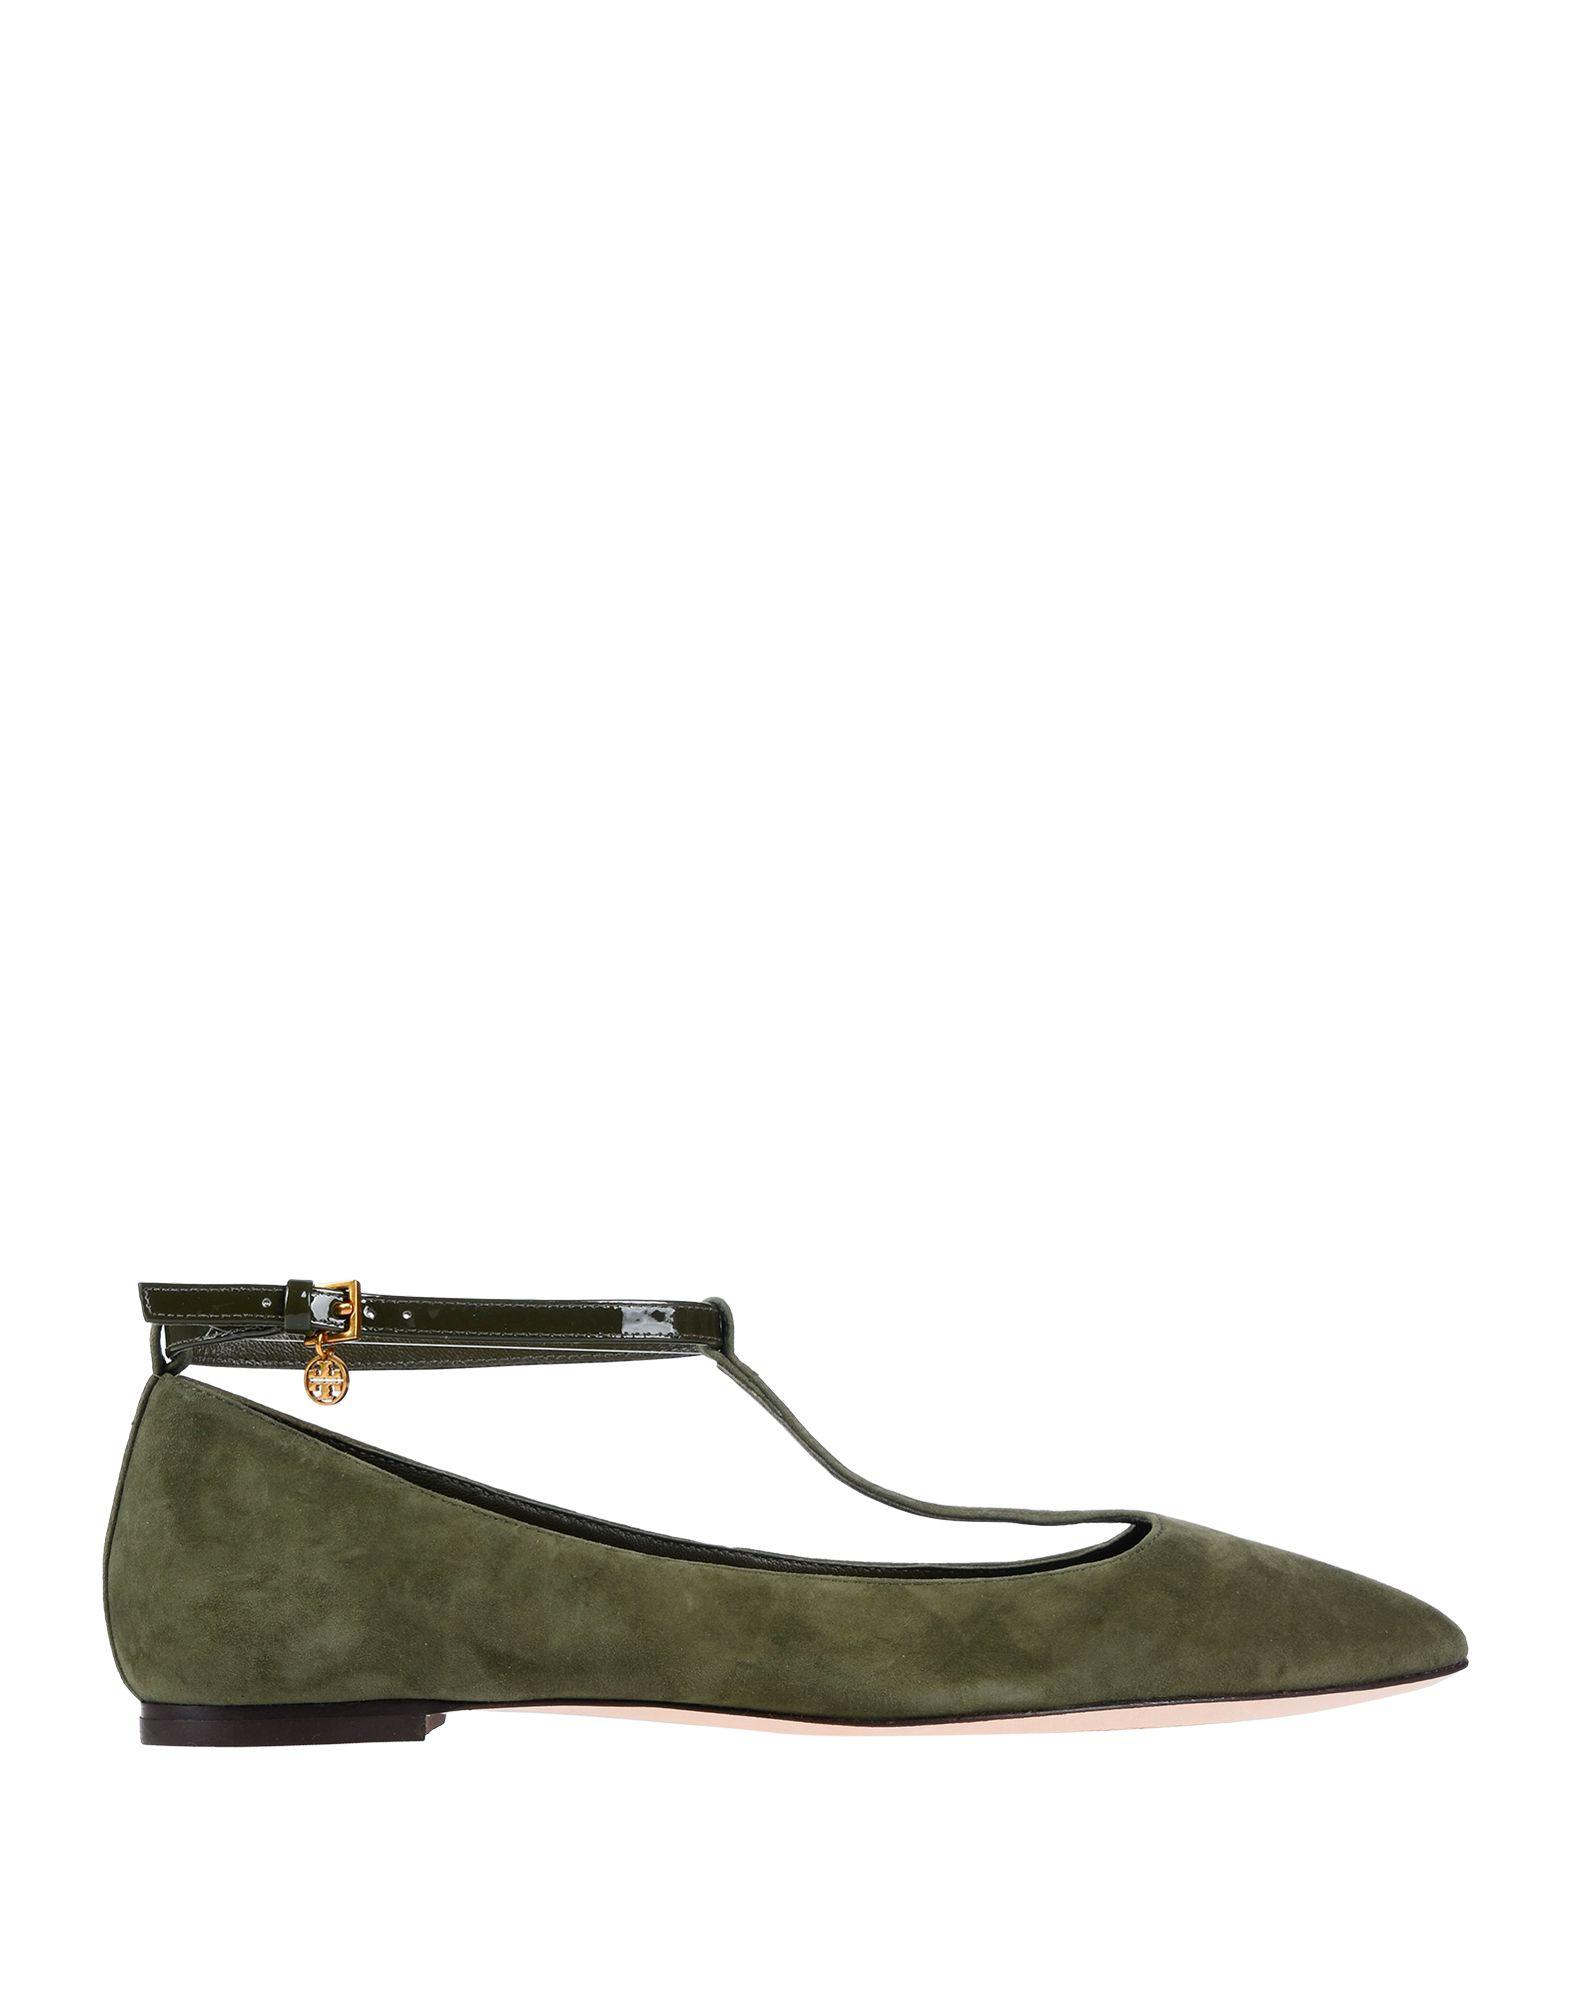 aad3b51826f851 Lyst - Tory Burch Ballet Flats in Green - Save 63%